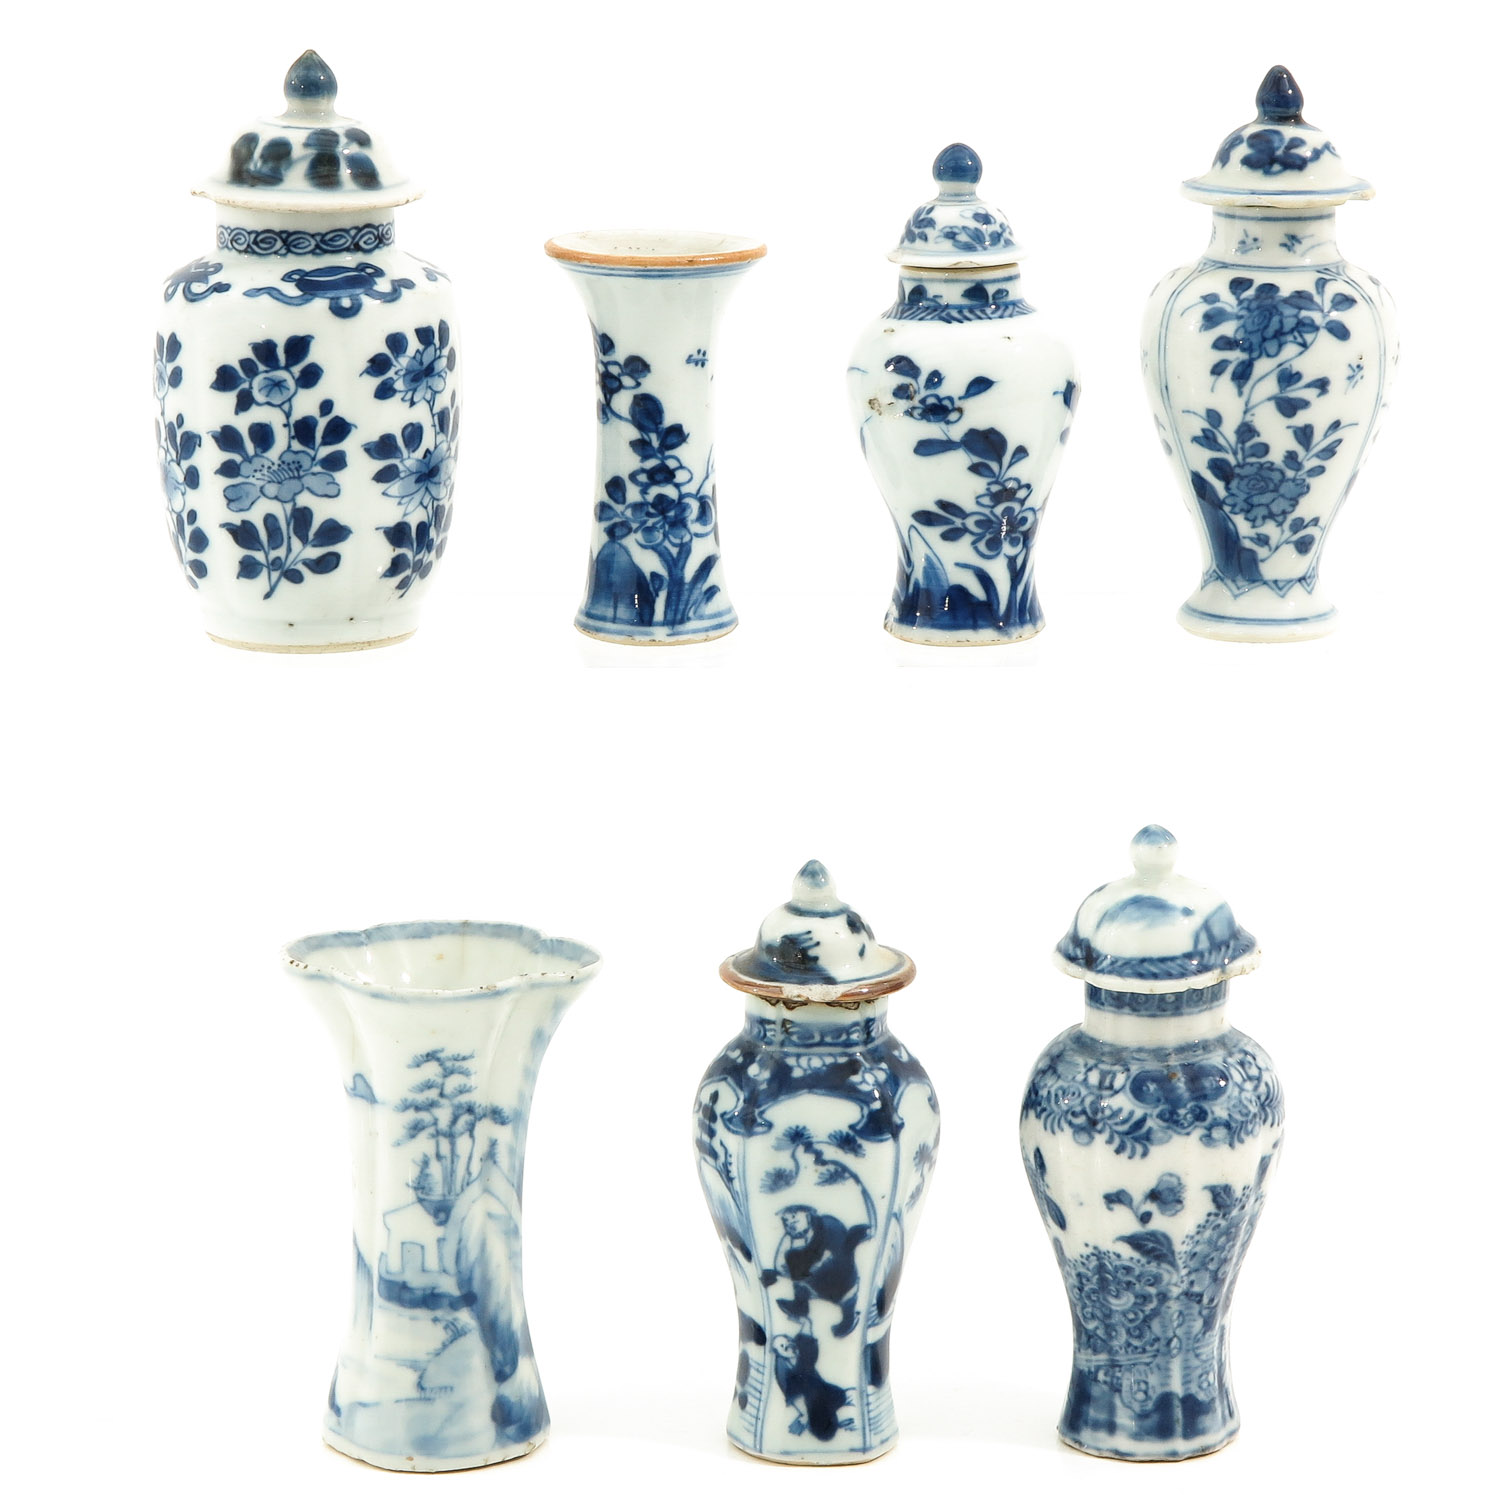 A Collection of 7 Miniature Vases